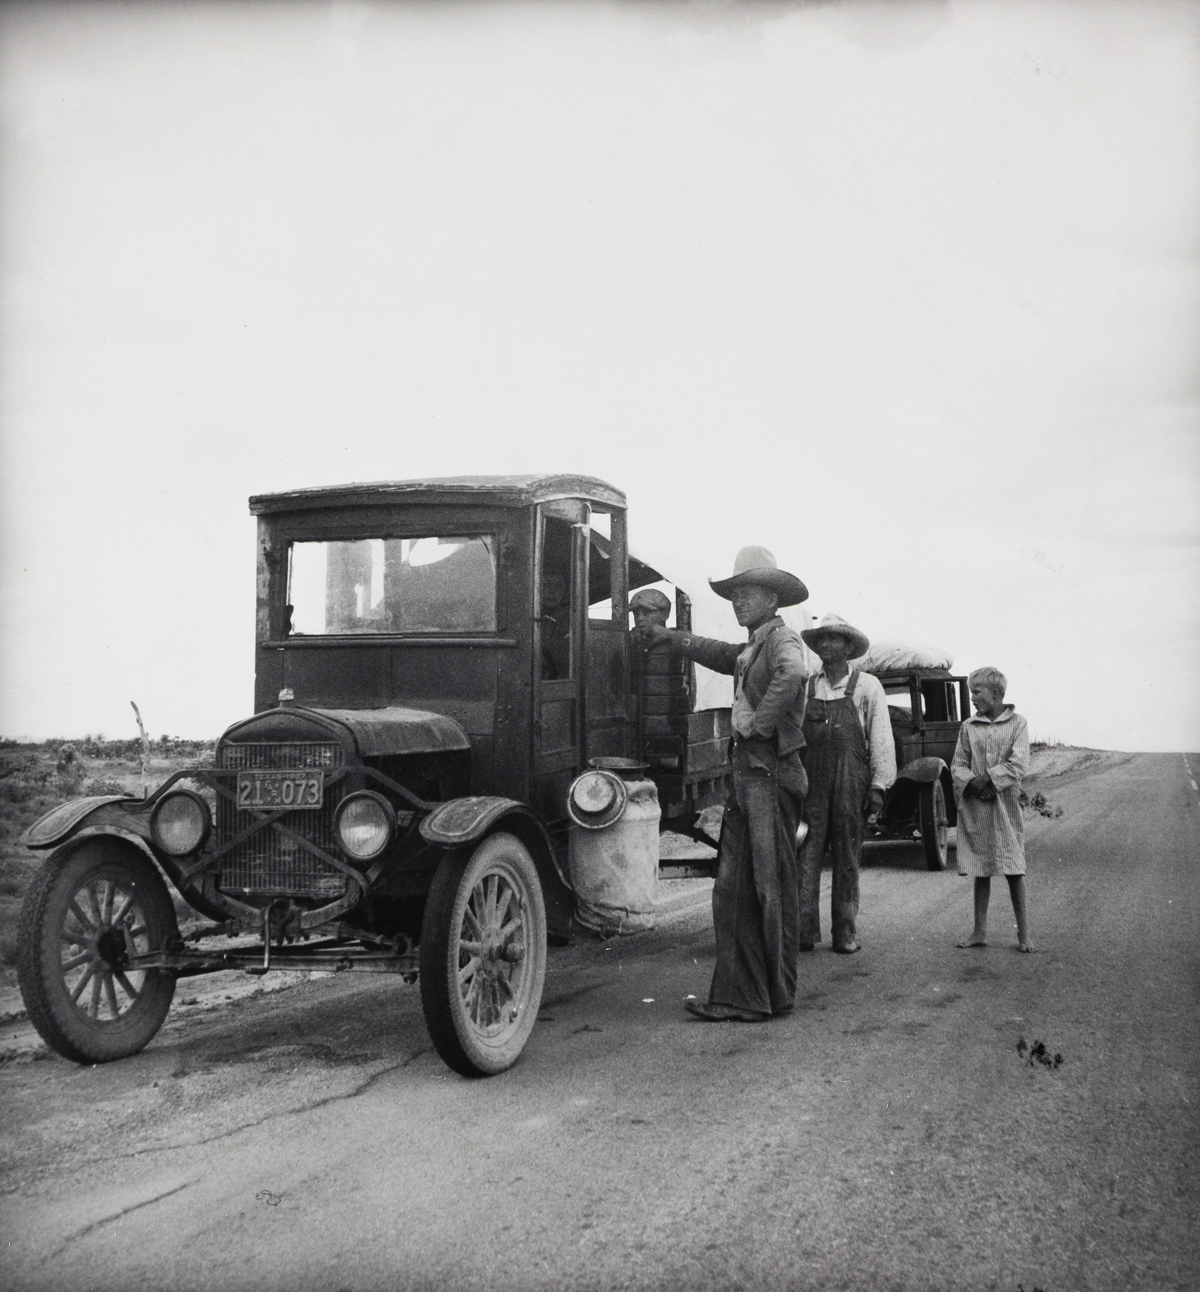 DOROTHEA LANGE (1895-1965) Drought refugees stopped along highway.